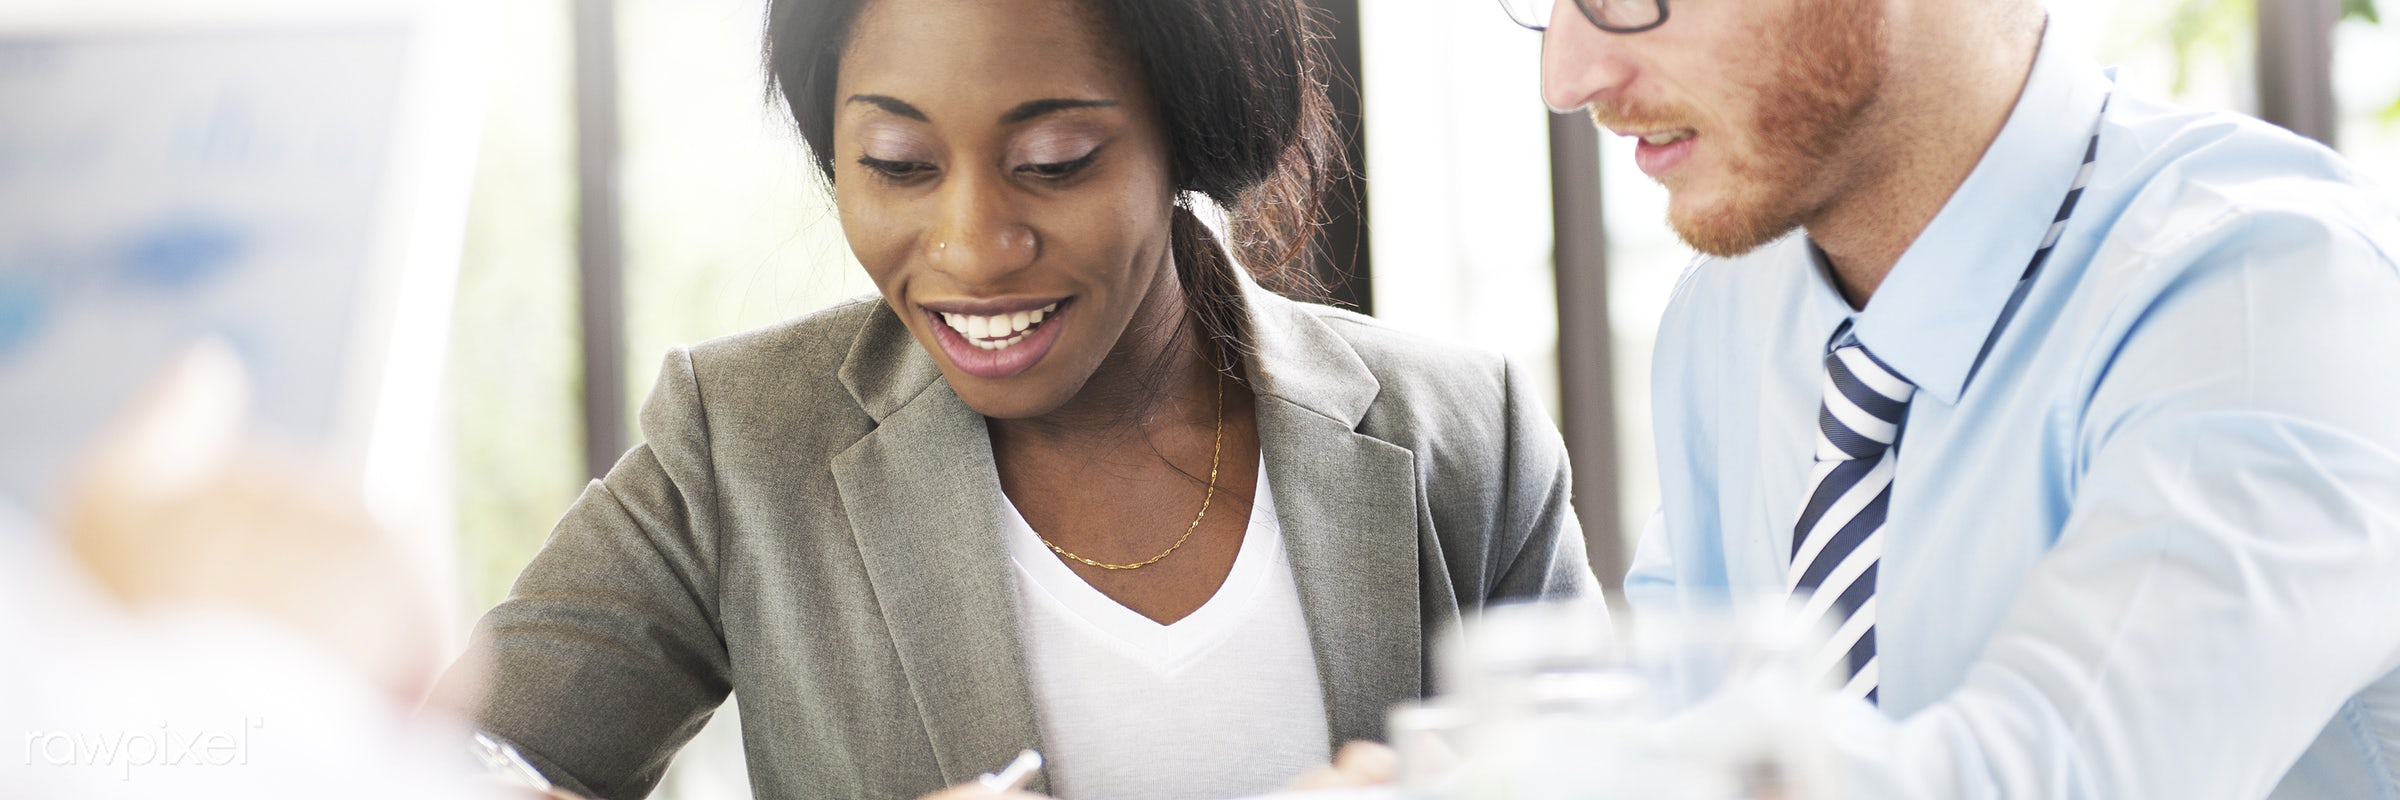 african descent, analysis, boardroom, brainstorming, business, business people, businessman, businesswoman, cheerful,...